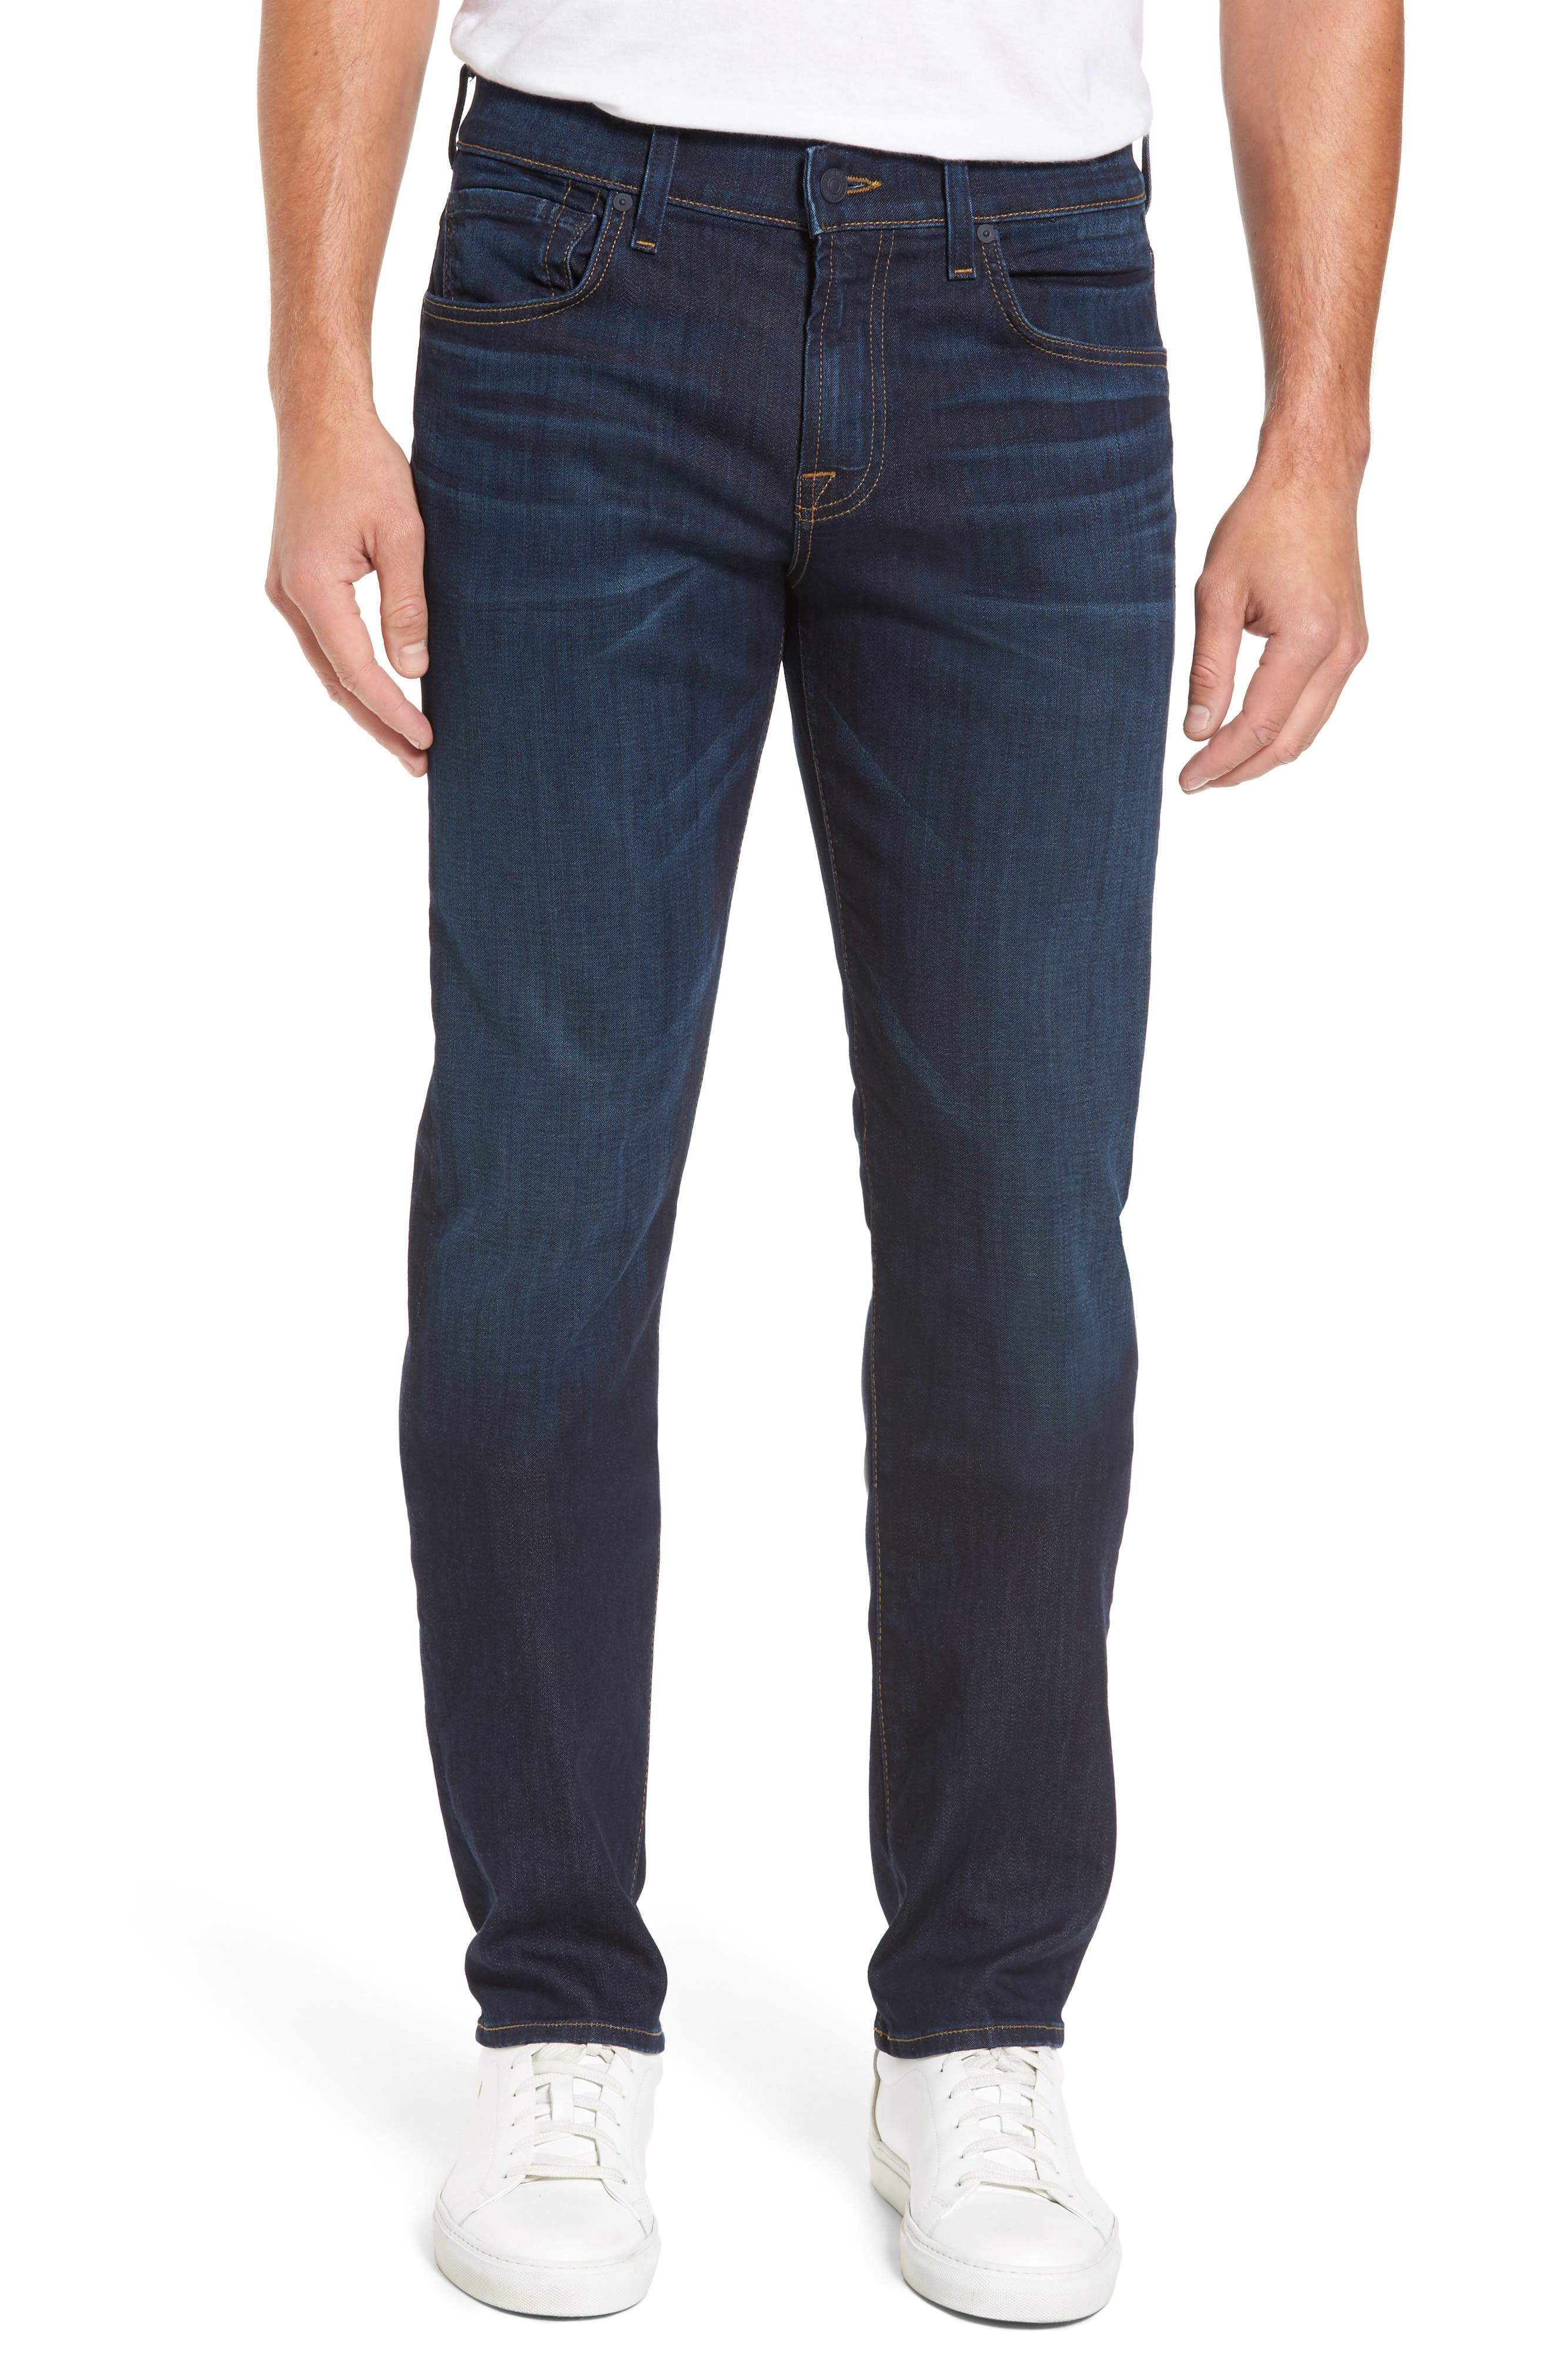 Luxe Performance Straight Leg Jeans,                             Main thumbnail 1, color,                             NORTH PACIFIC